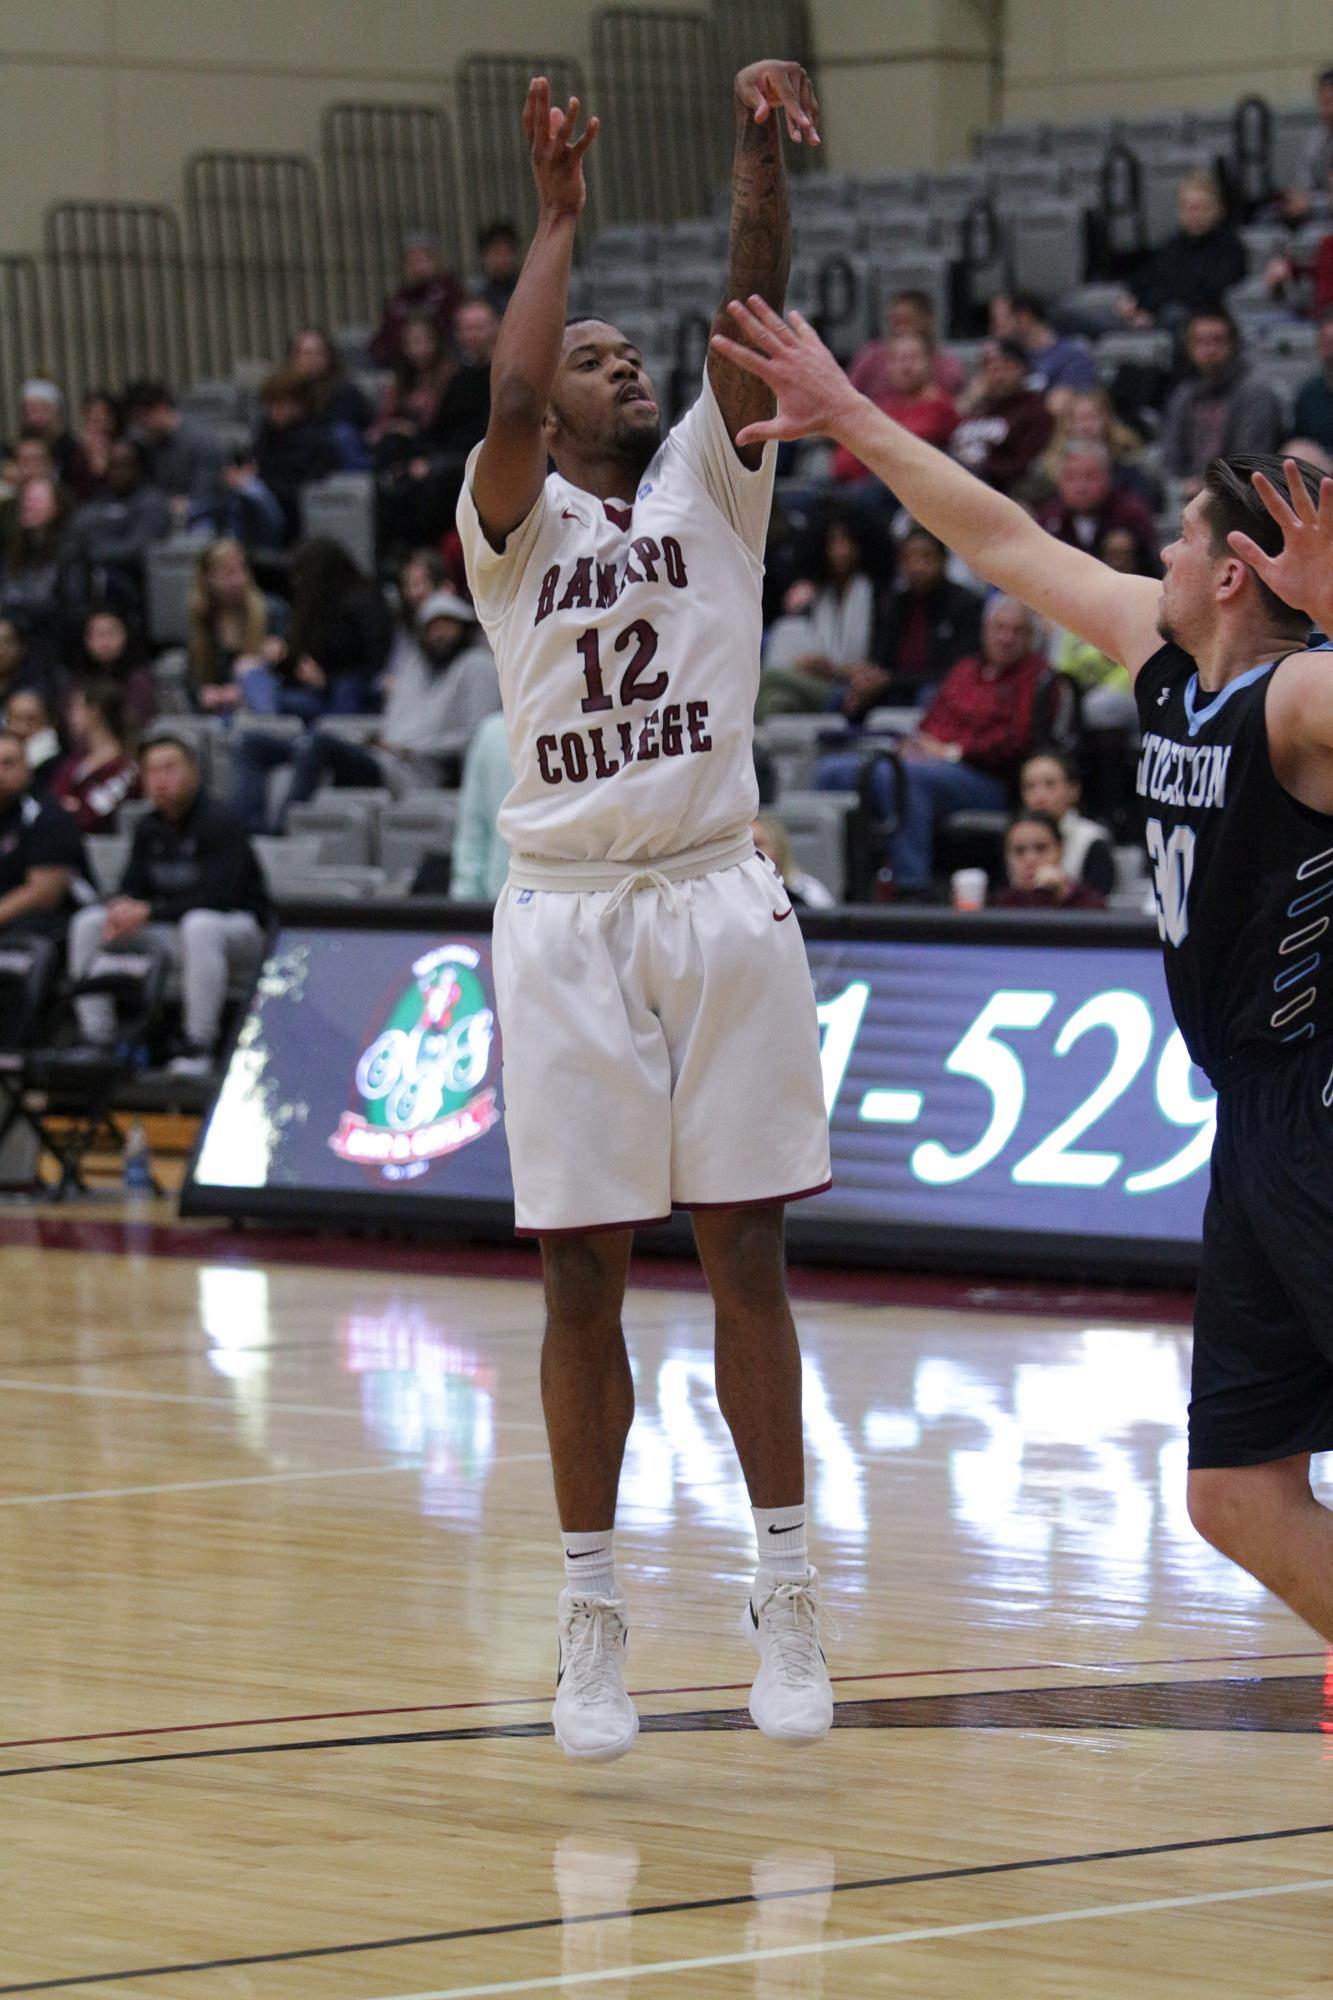 77aab057b LEWIS NETS CAREER HIGH IN 82-66 WIN OVER GORDON - Ramapo College of ...